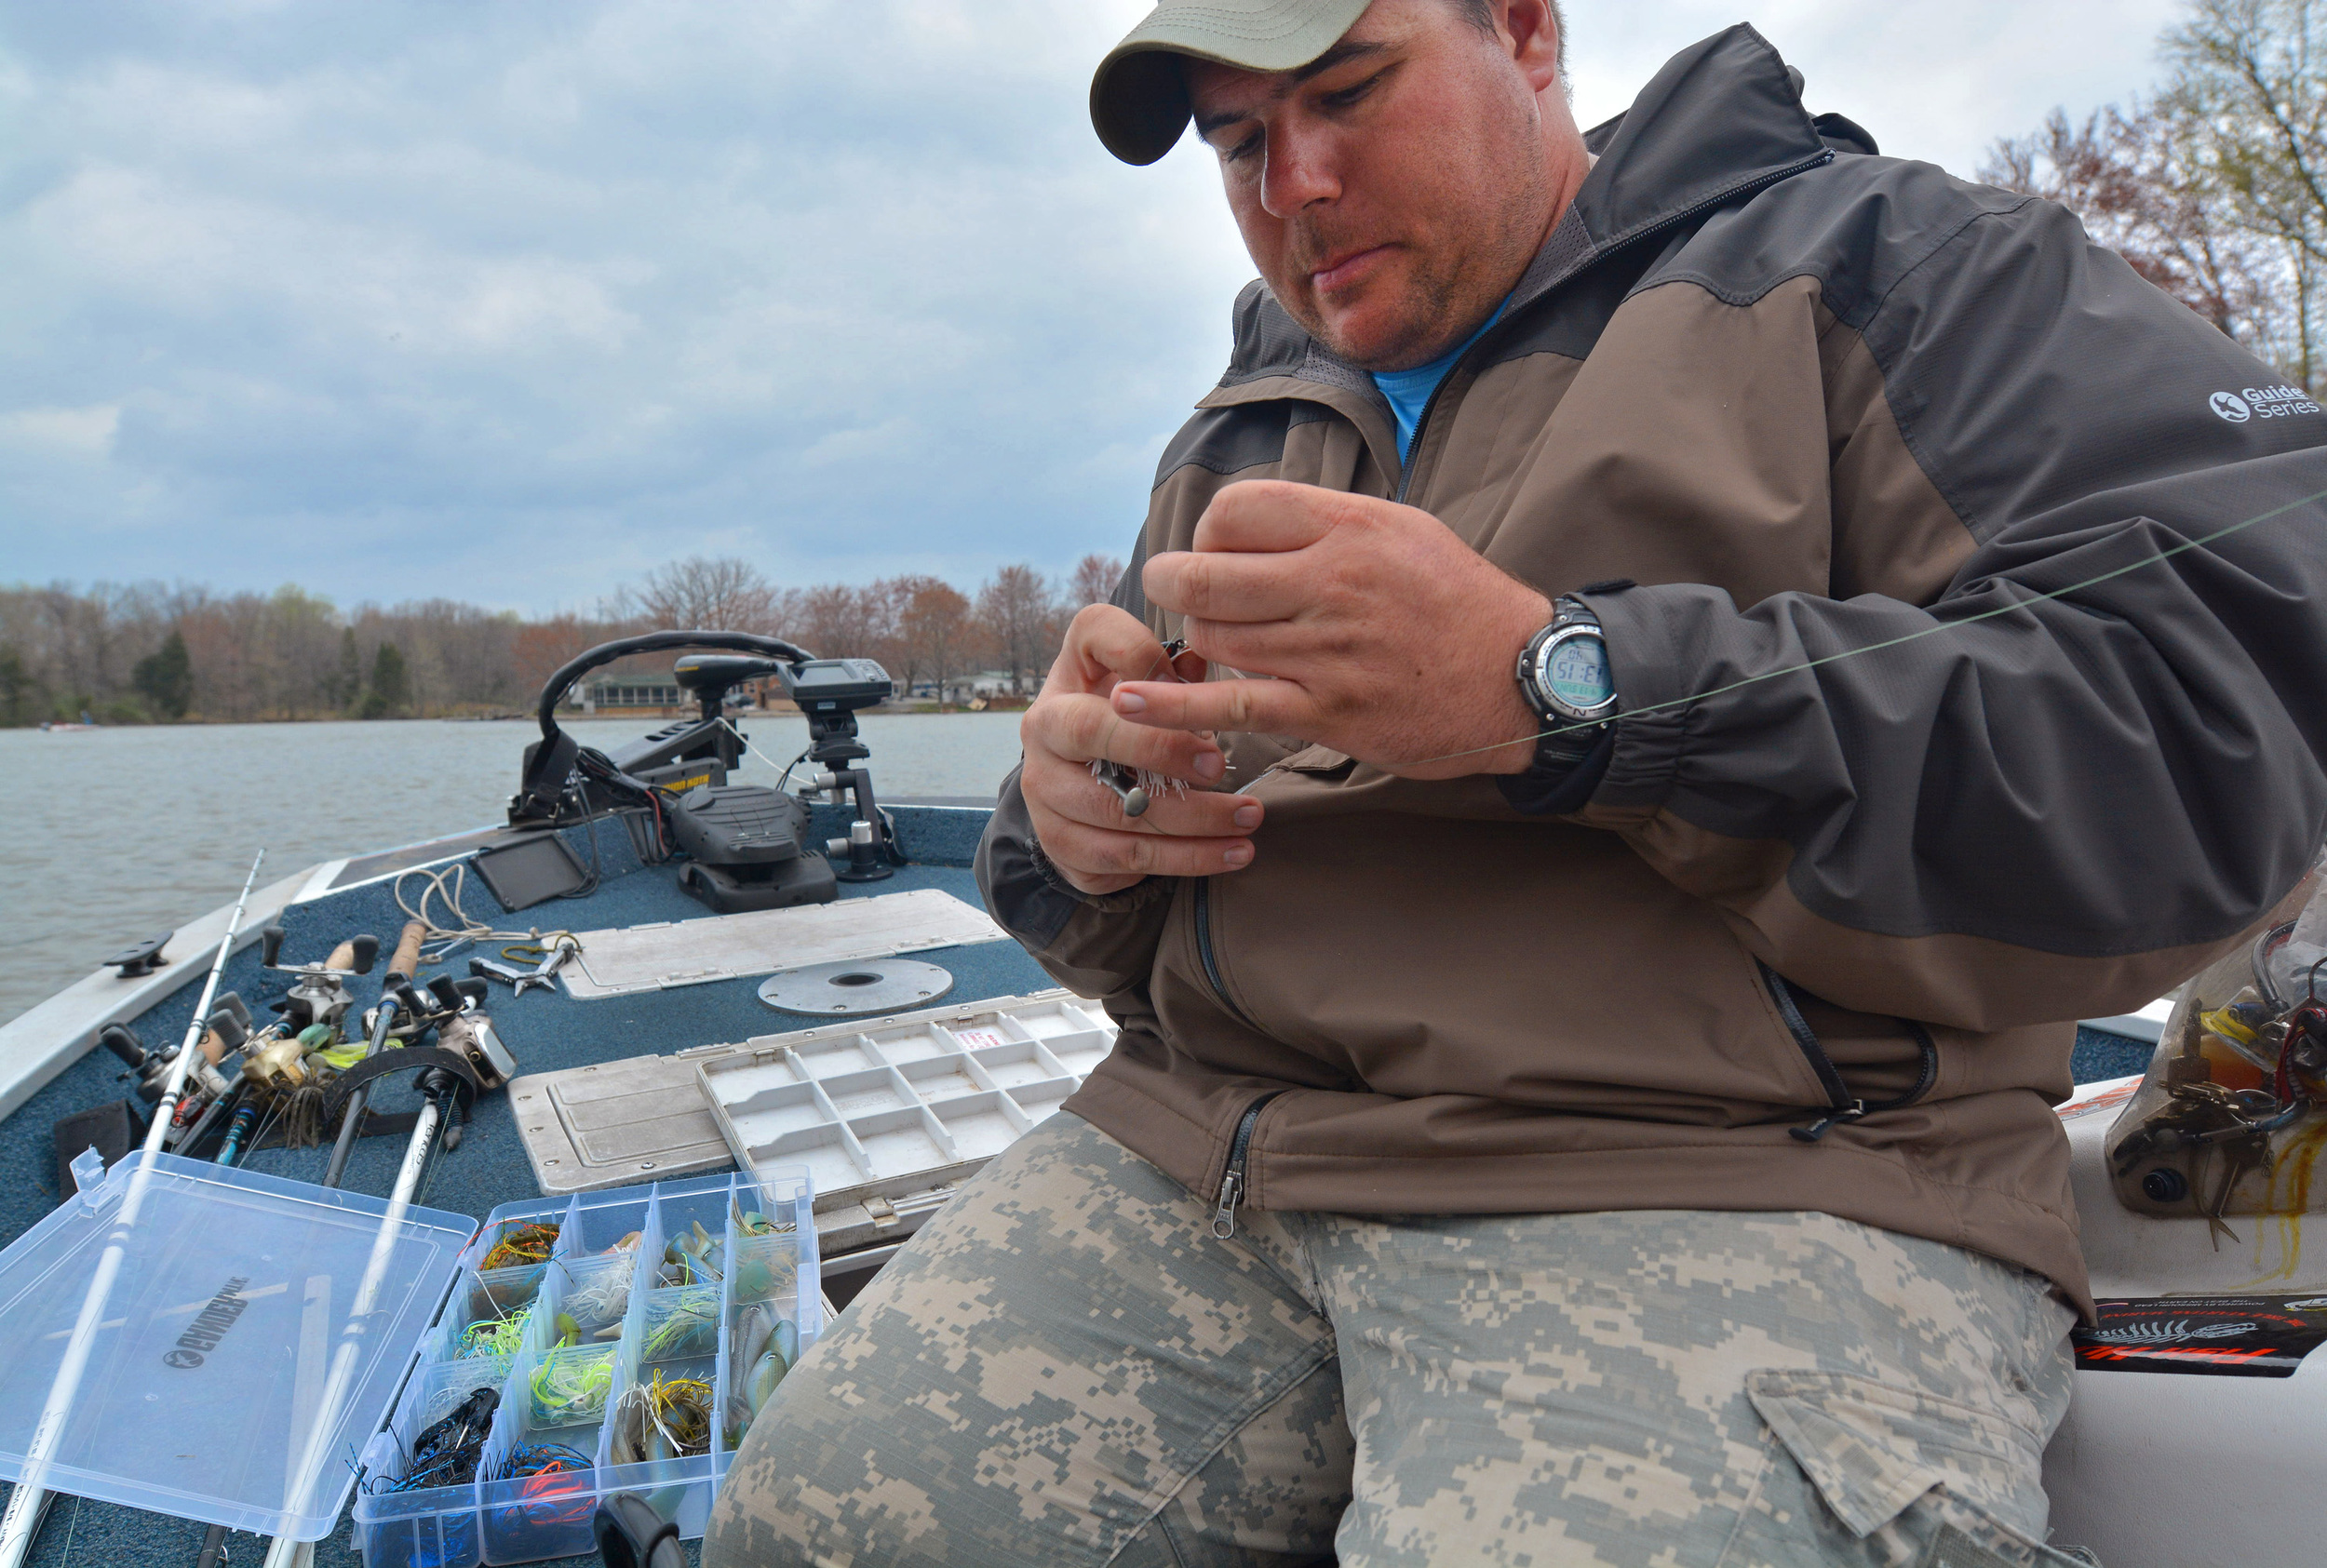 Aaron Connor, of Murphysboro, Ill., fishes during the fifth-annual Saluki Bassers Veterans Appreciation Fishing Tournament on April13at Lake of Egypt in Marion, Ill.